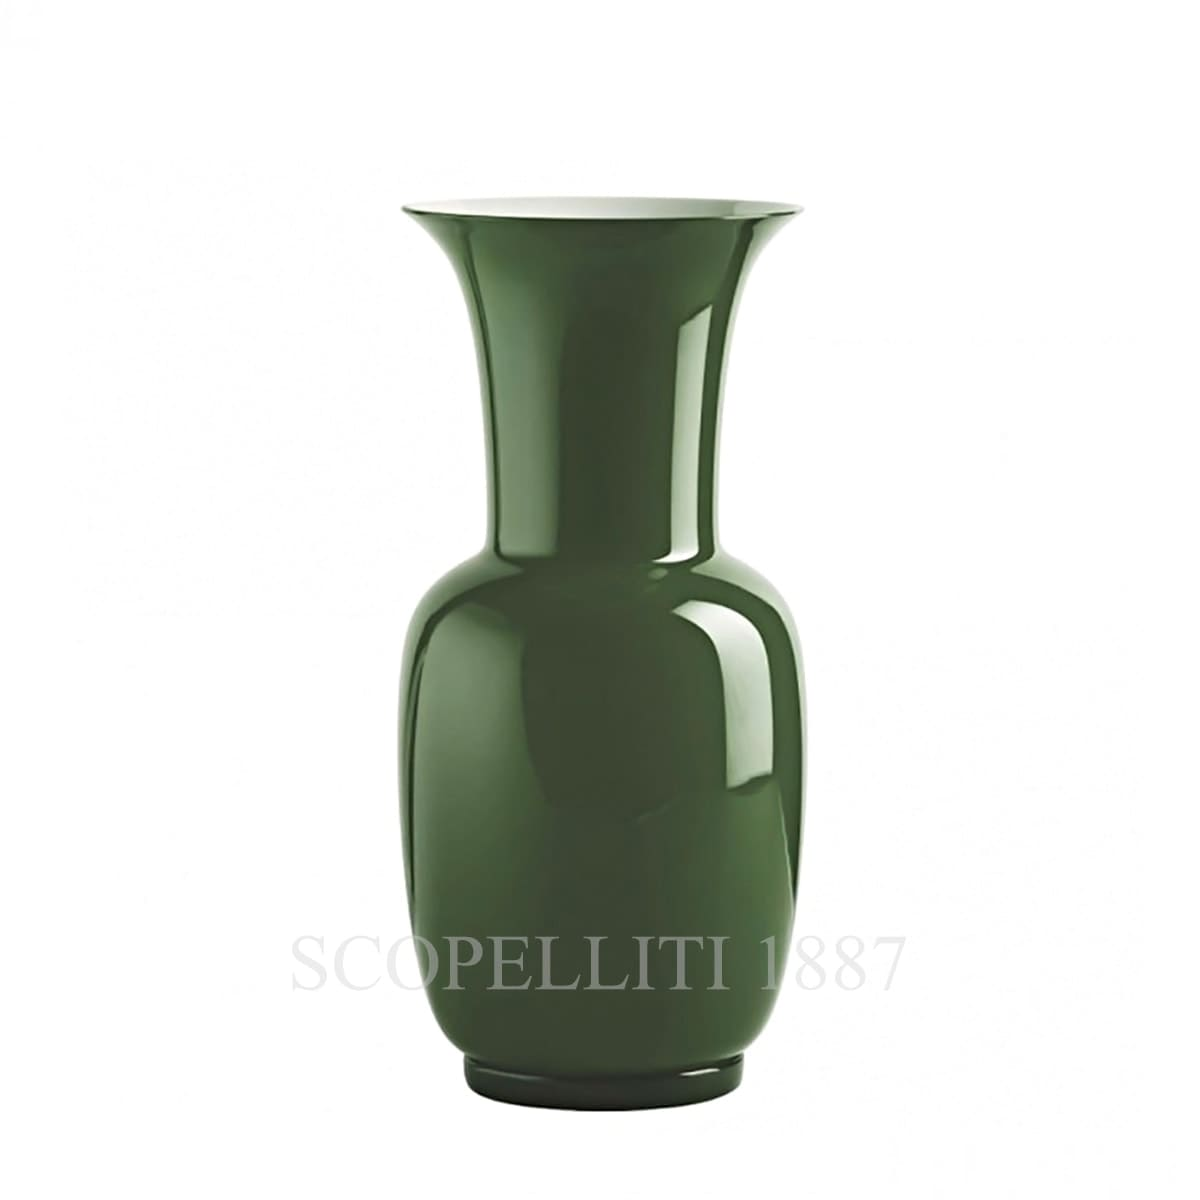 Venini Opalino Vase medium apple green 706.22